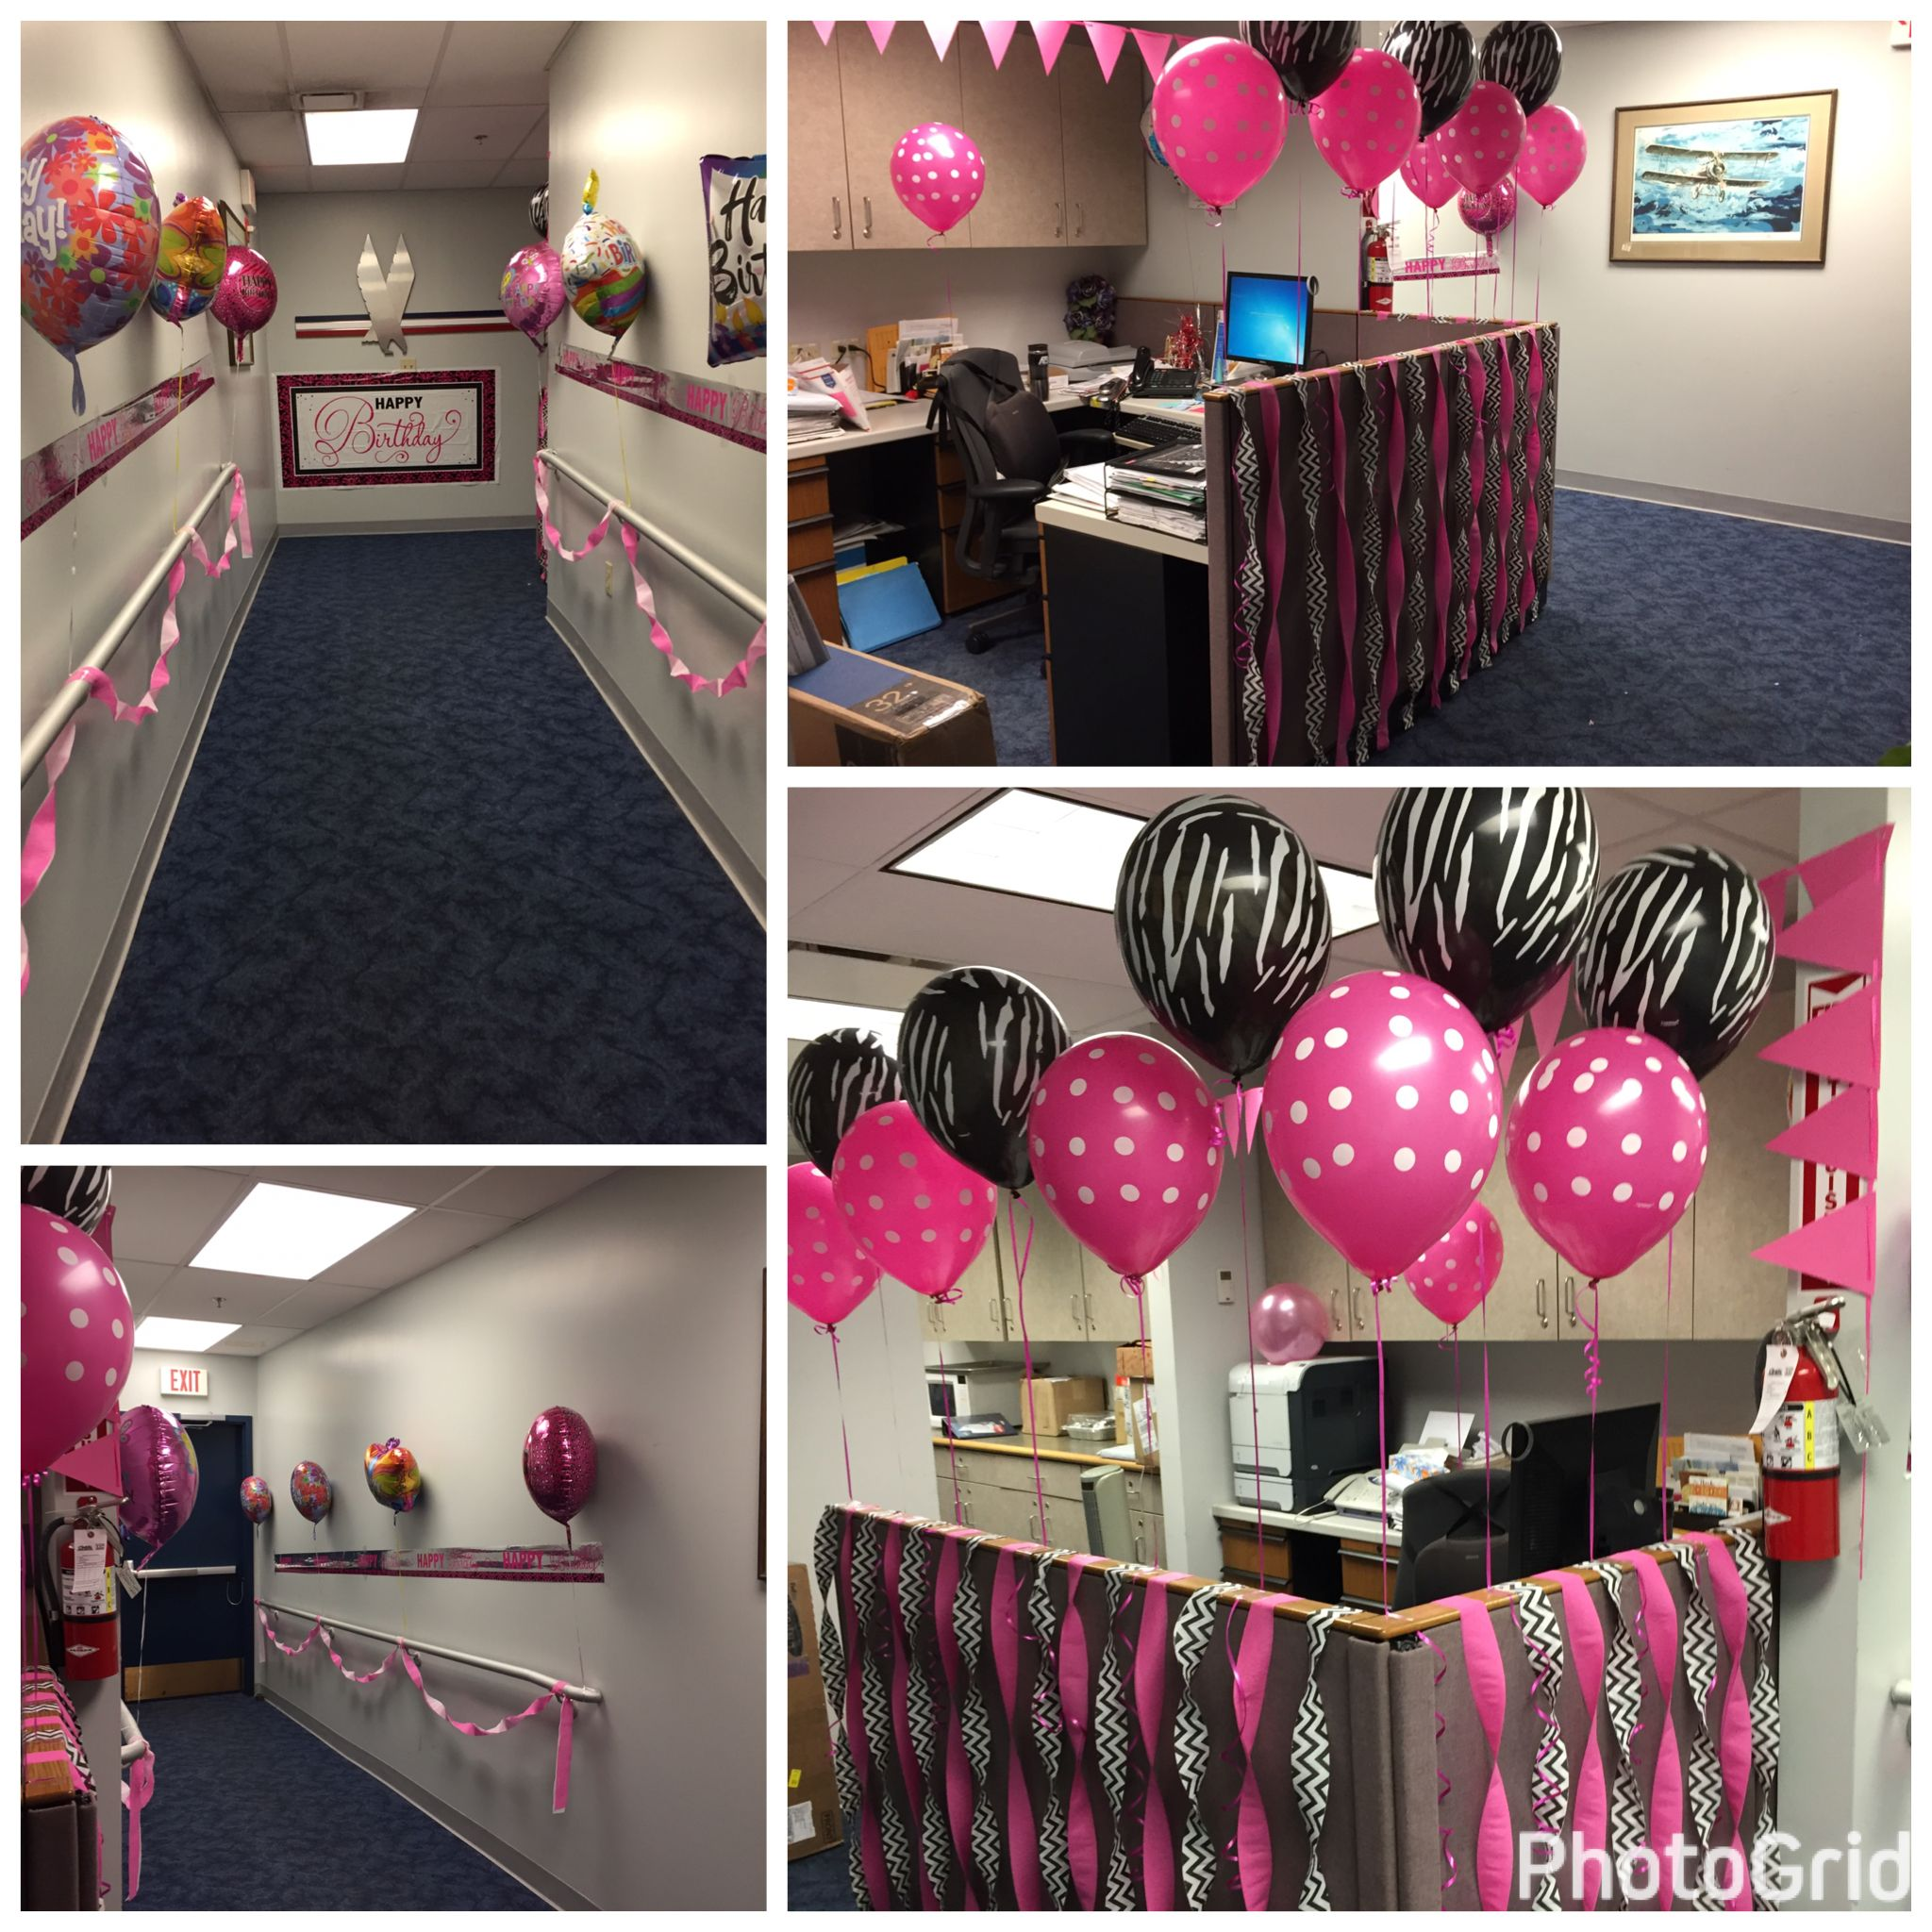 Decorating Office for Birthday Party! | Party Decorations ...